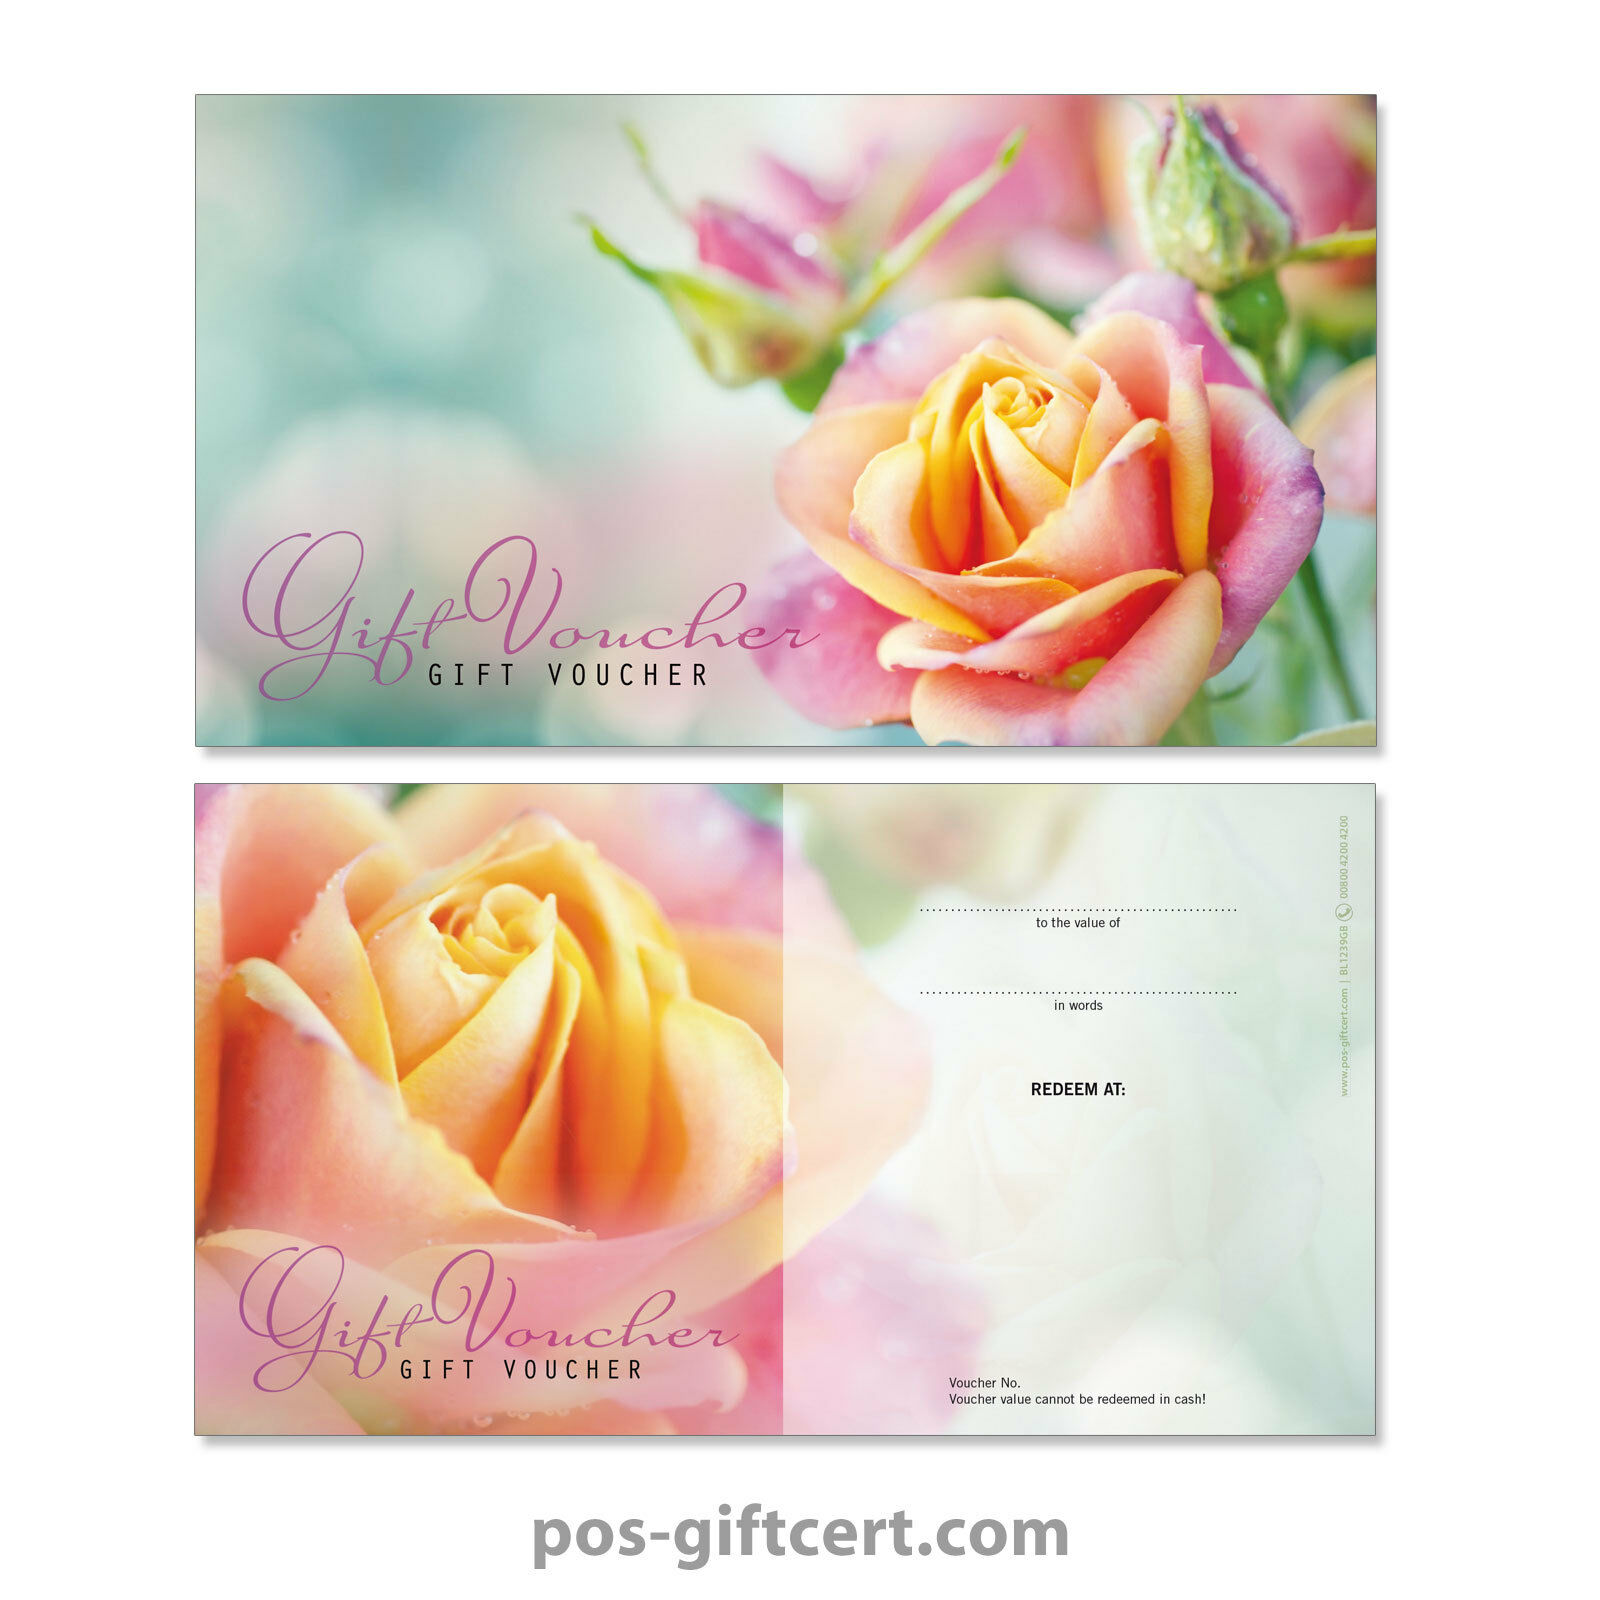 Universal gift vouchers for all occasions, flowers BL1239GB | Wunderbar